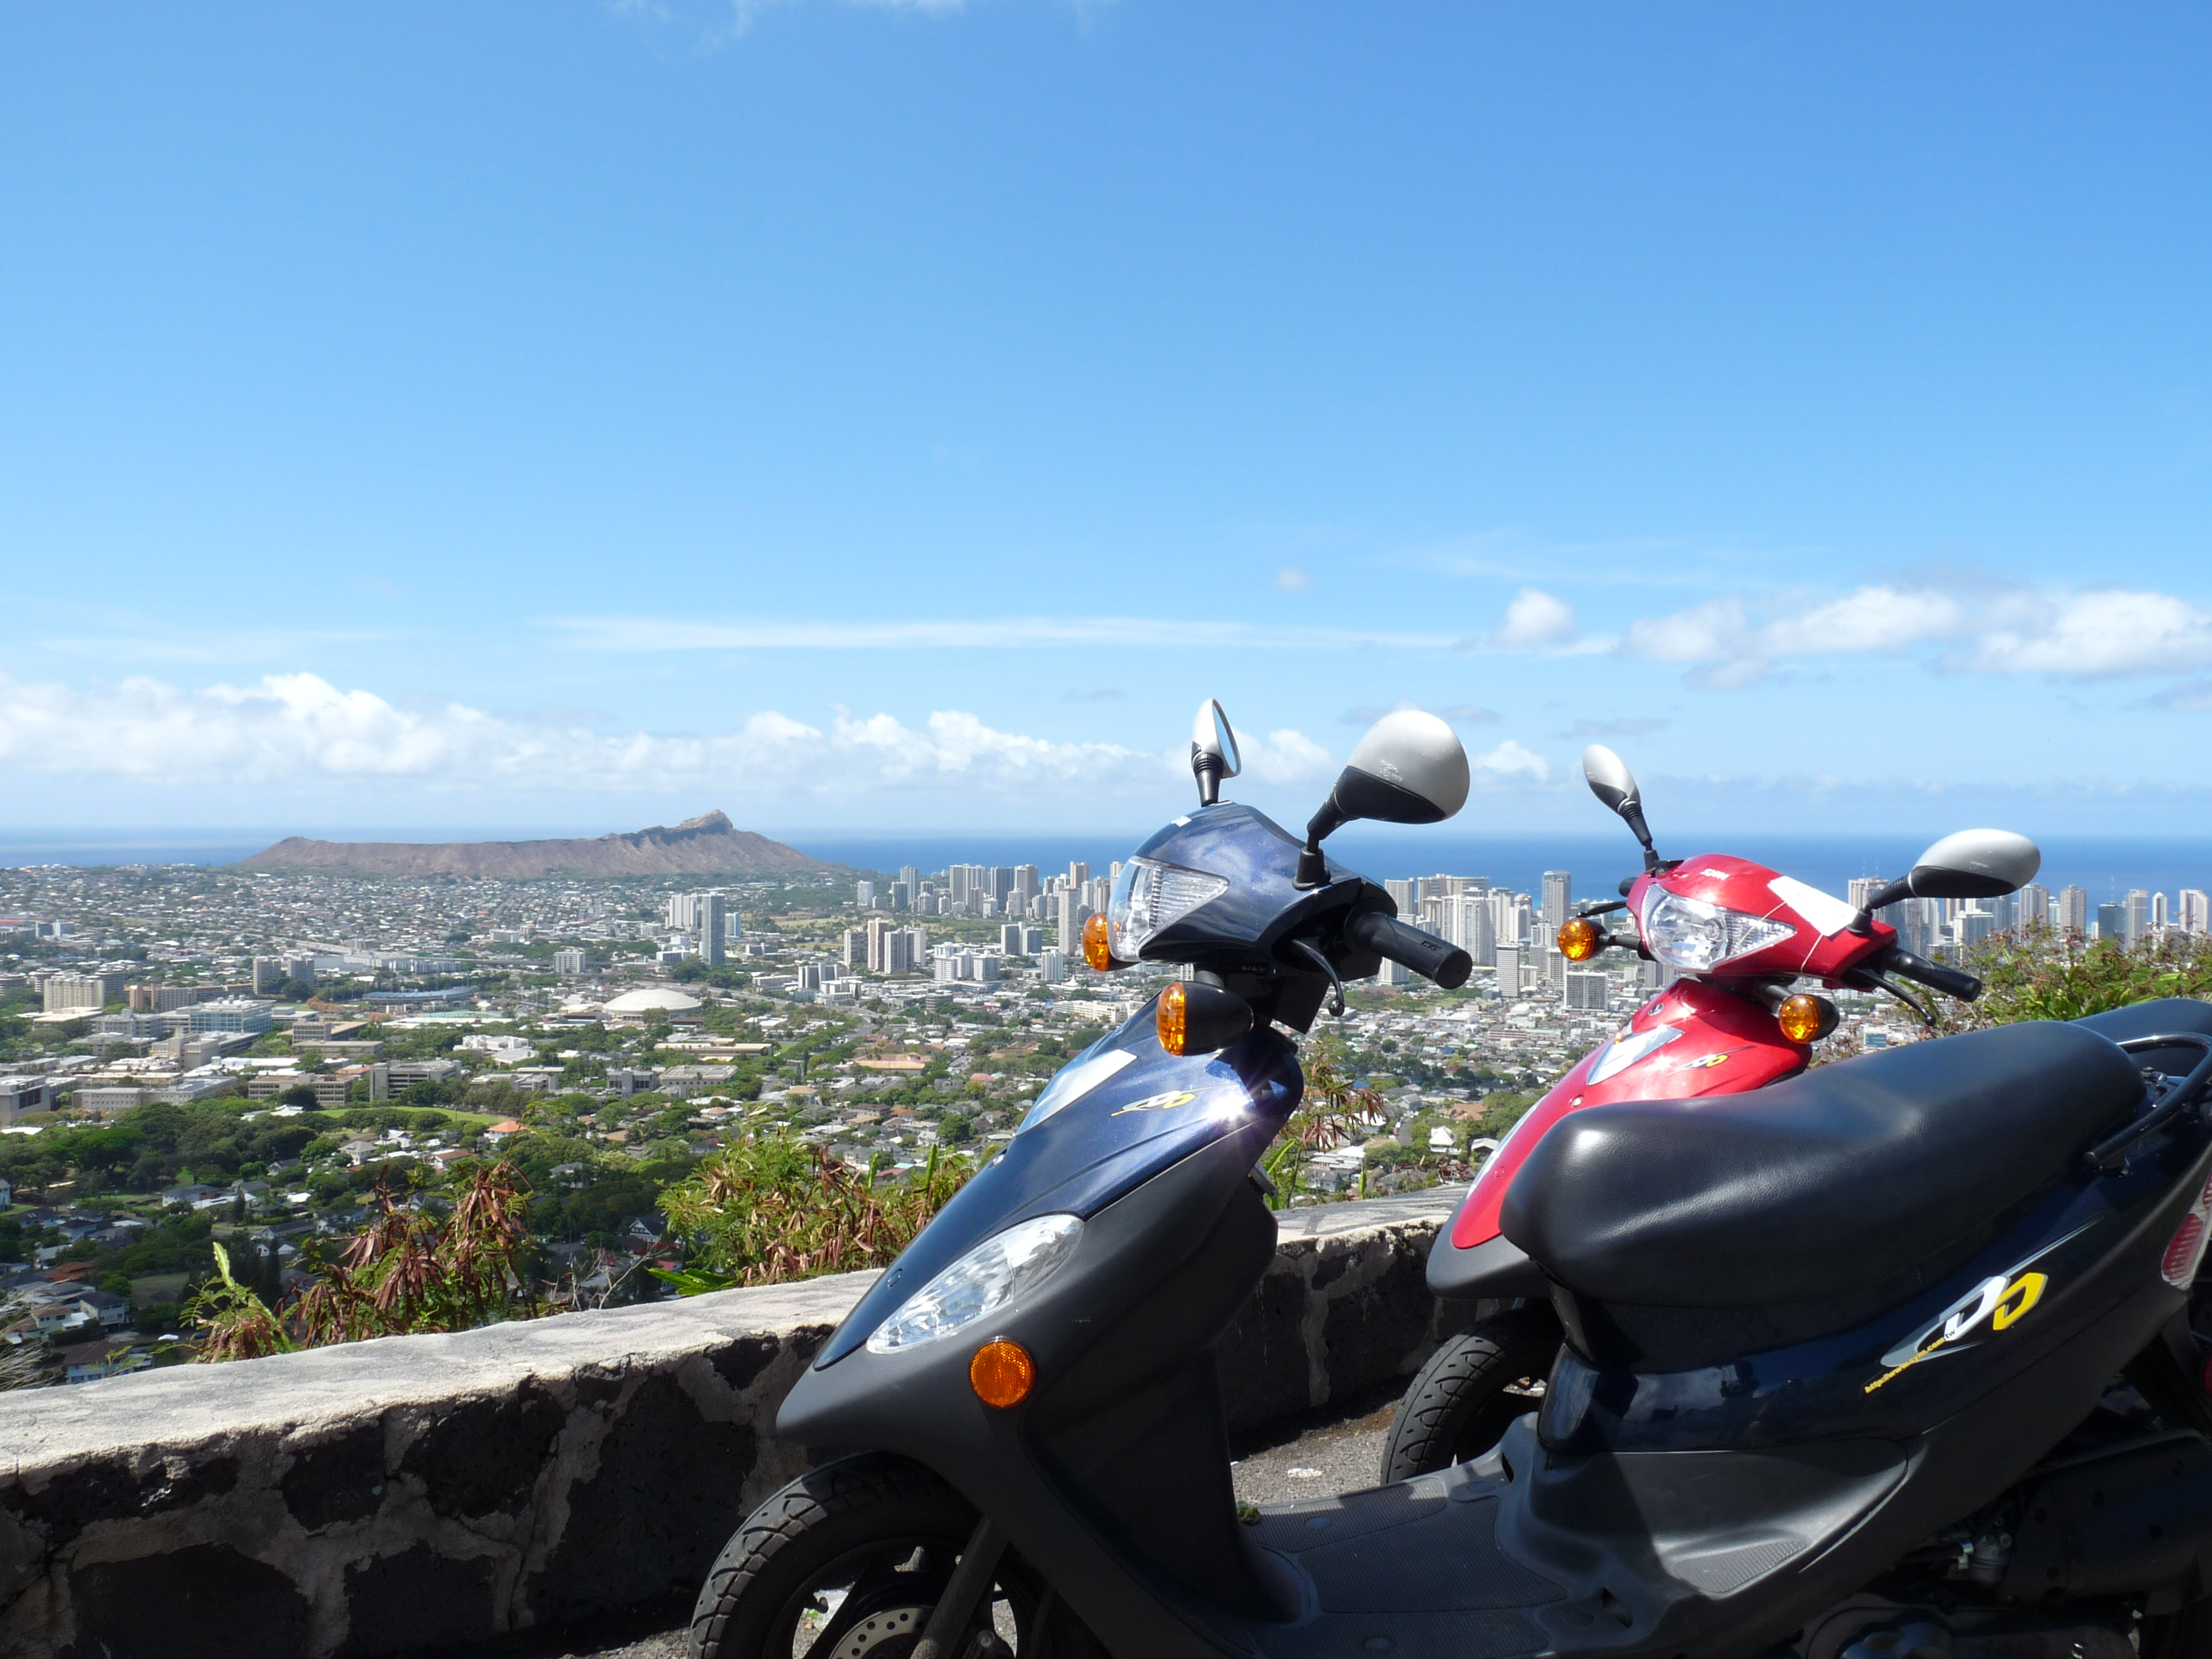 Adam's mopeds at Tantalus